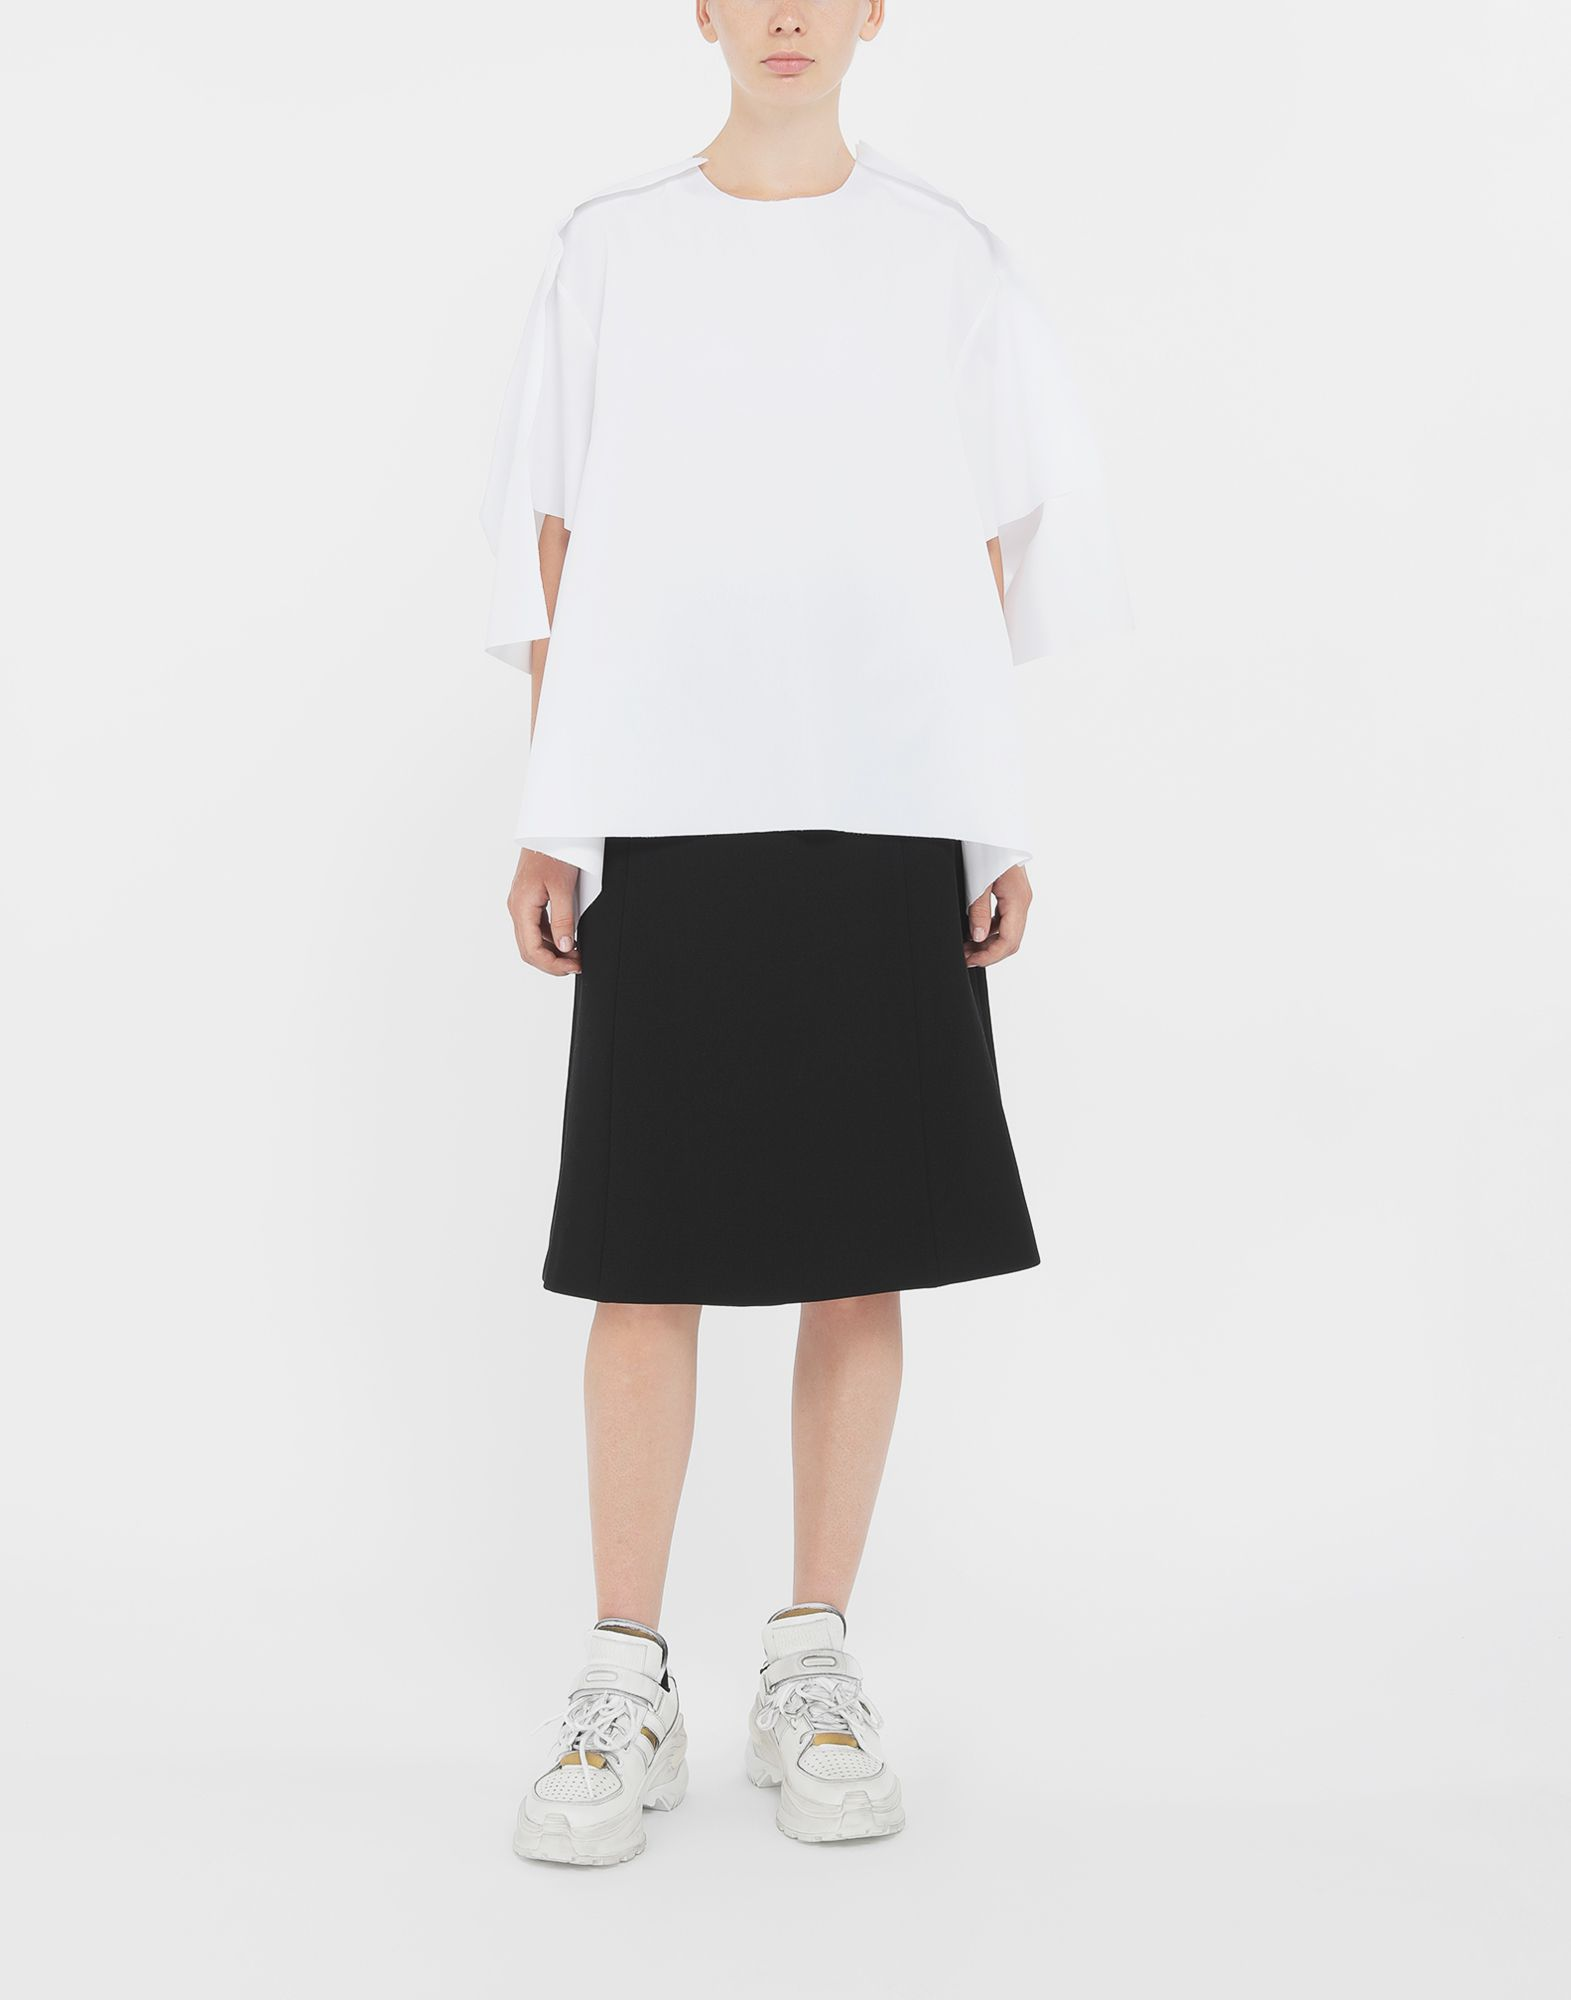 MAISON MARGIELA Outline blouse Top Woman d